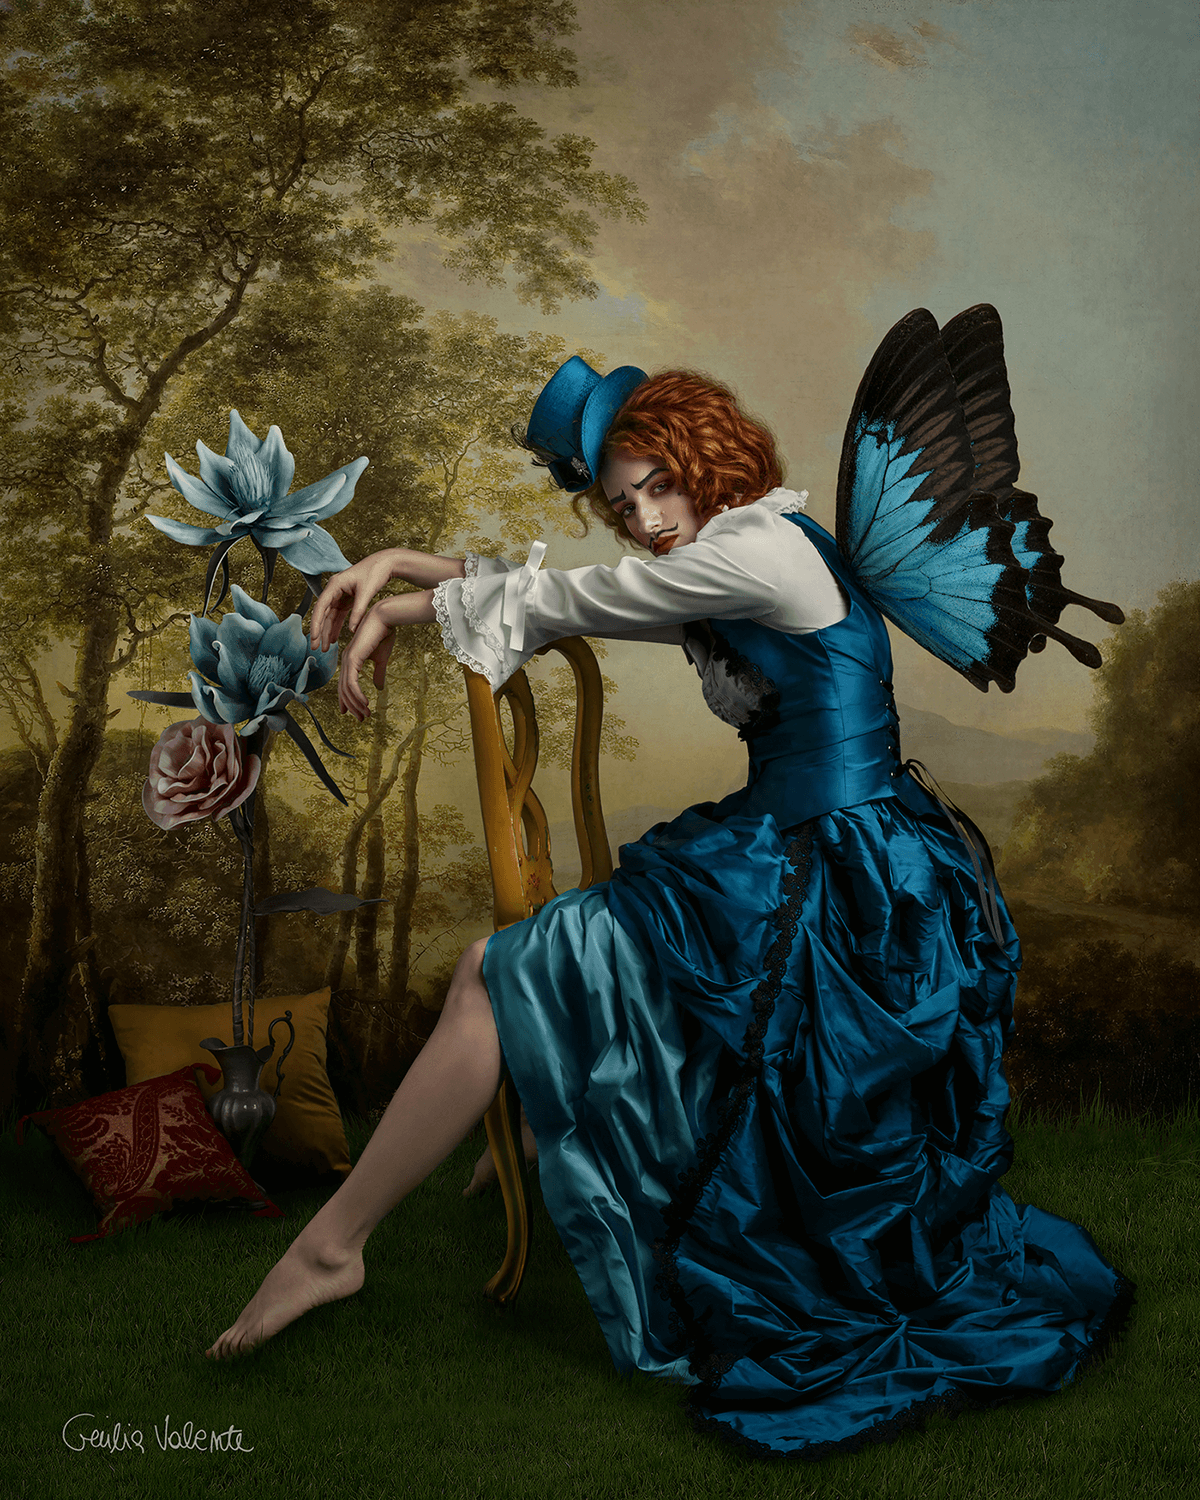 Custom top hats, masks, crowns, and butterfly wings. Paintings as backdrops. Discover fine art photography with Giulia Valente